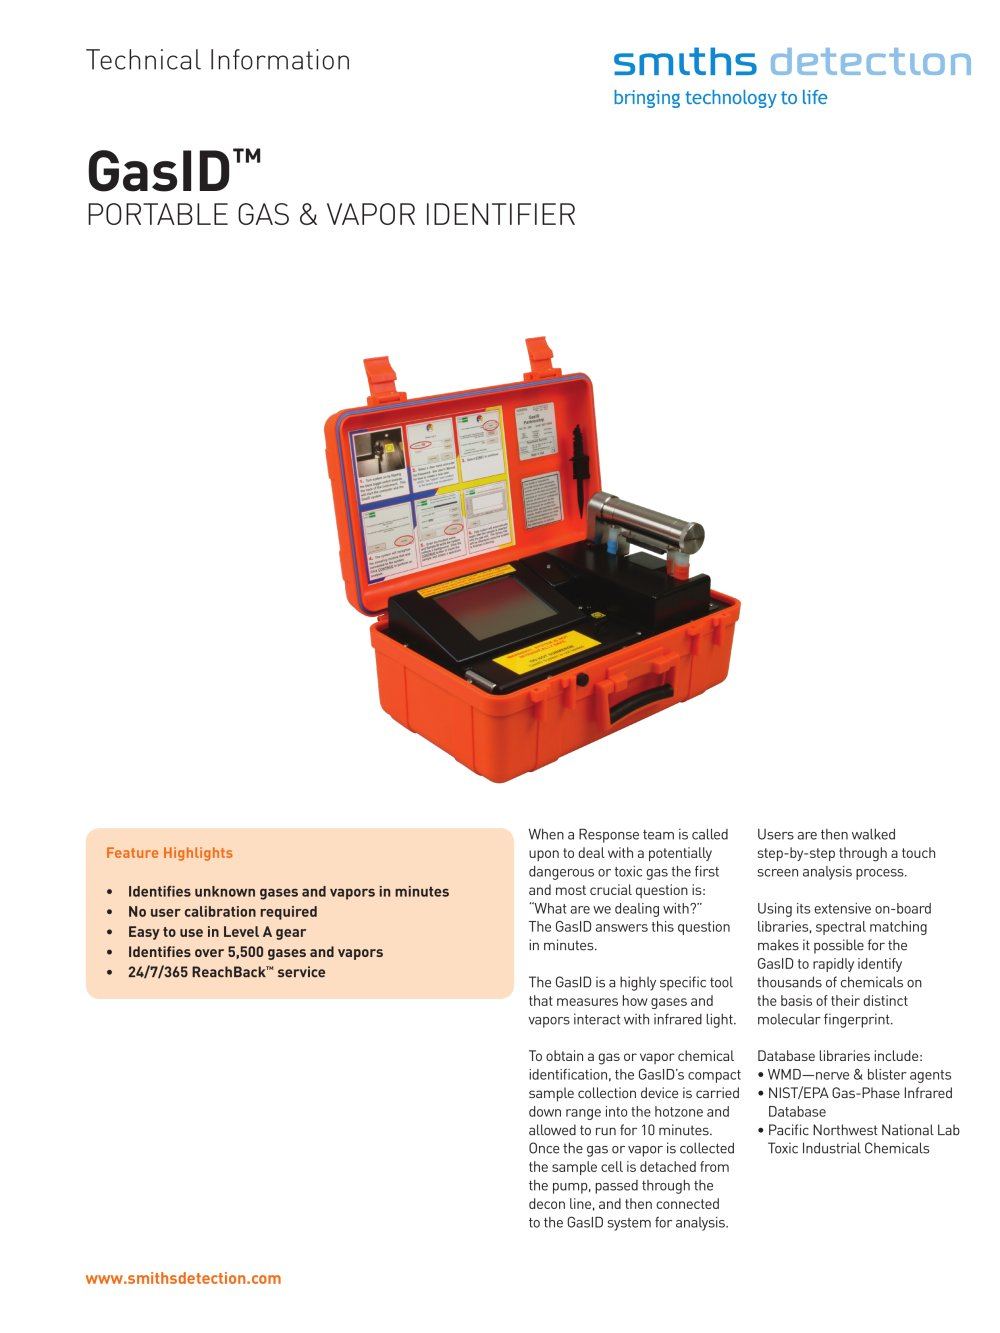 GasID PORTABLE GAS & VAPOR IDENTIFIER - 1 / 2 Pages